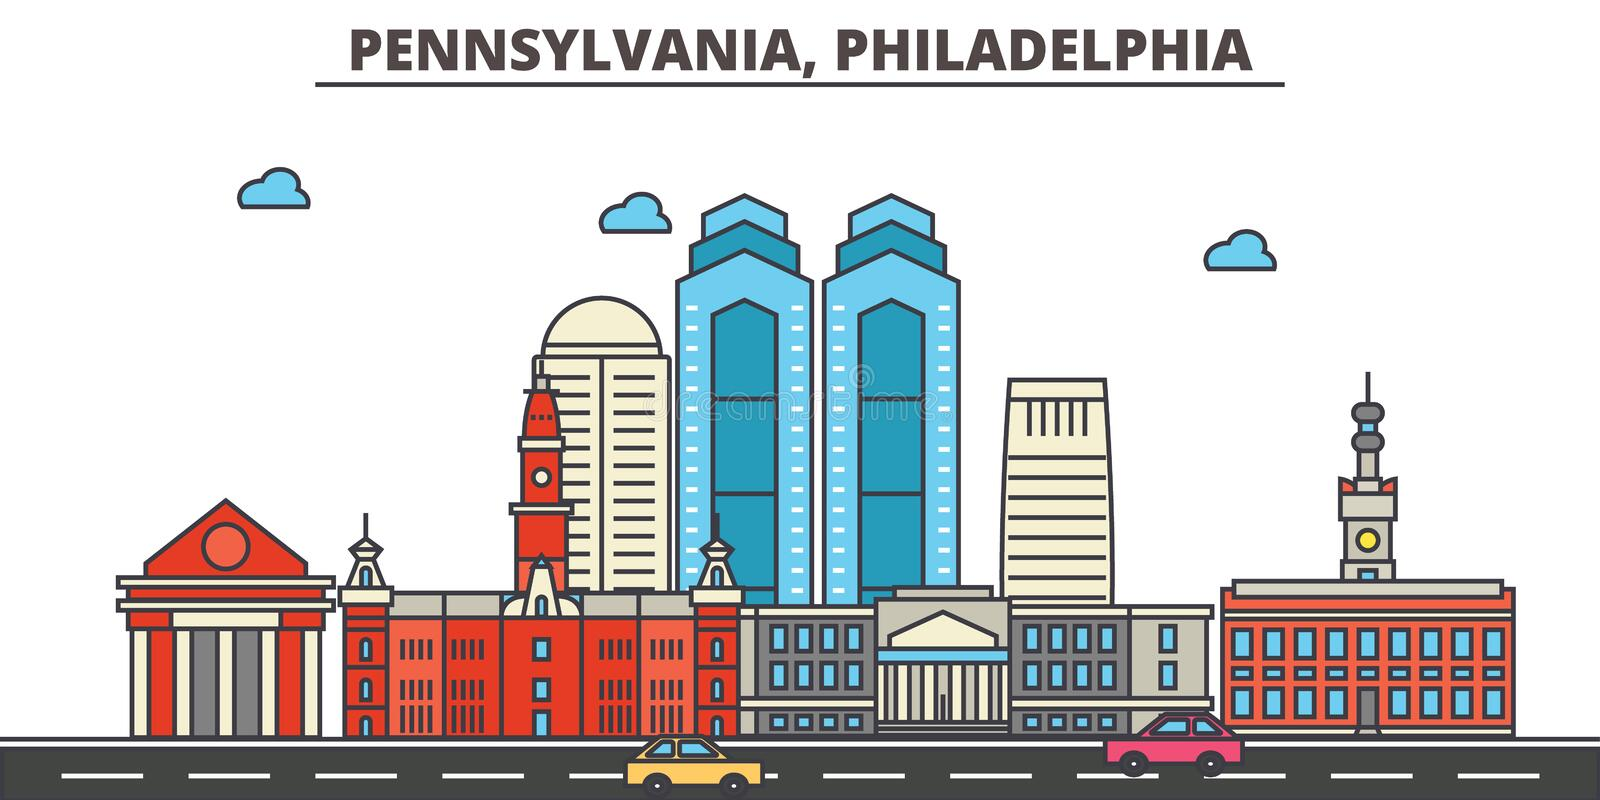 Pennsylvania, Philadelphia De Horizon van de stad royalty-vrije illustratie